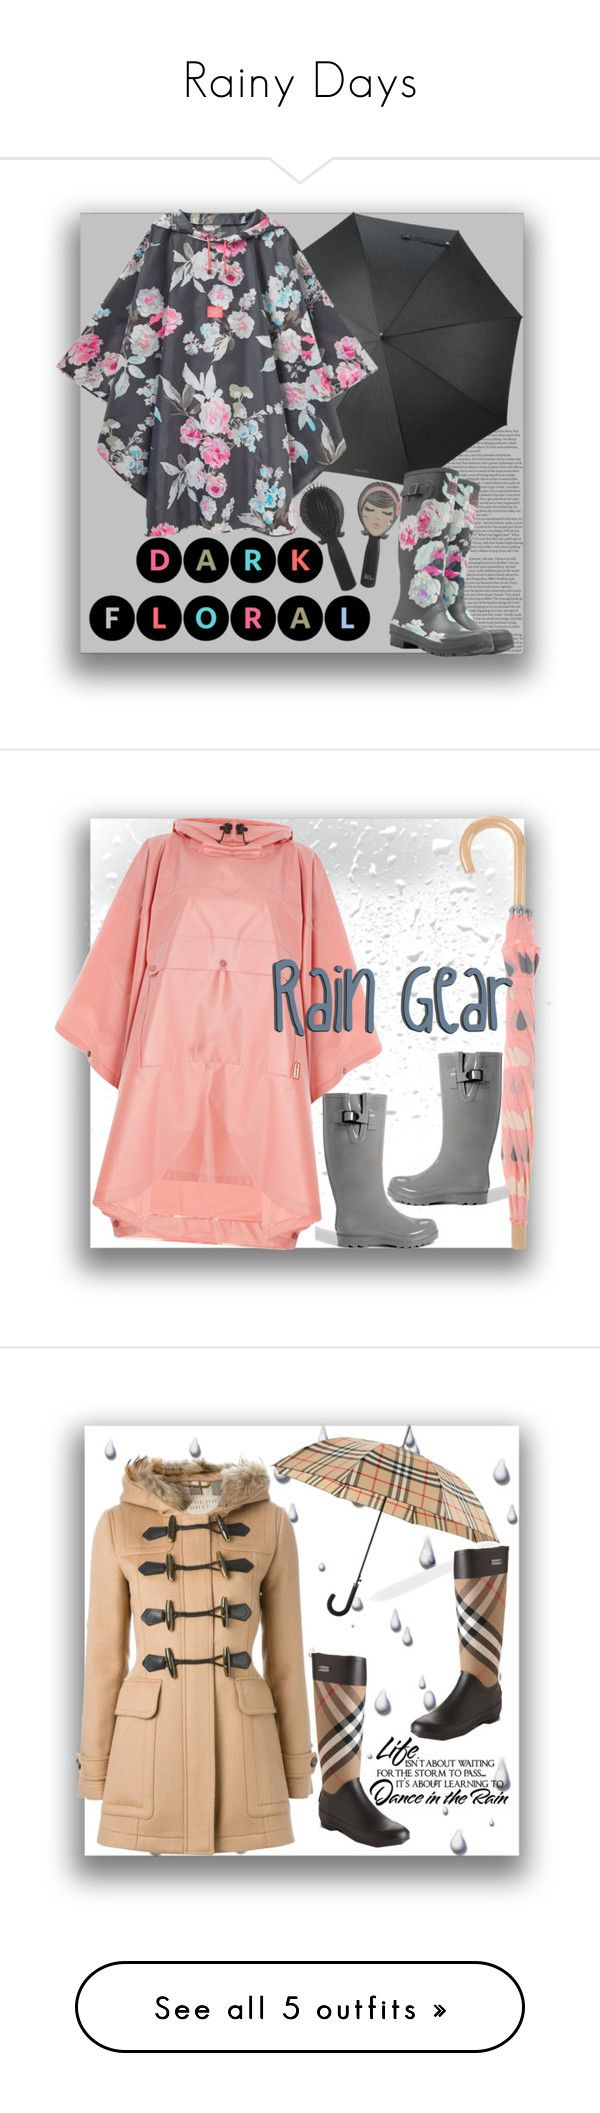 """""""Rainy Days"""" by tailormadelady ❤ liked on Polyvore featuring Boots, raincoat, styleicon, trendsetters, ASOS, Kenzo, Joules, Hunter, Hatley and maurices"""